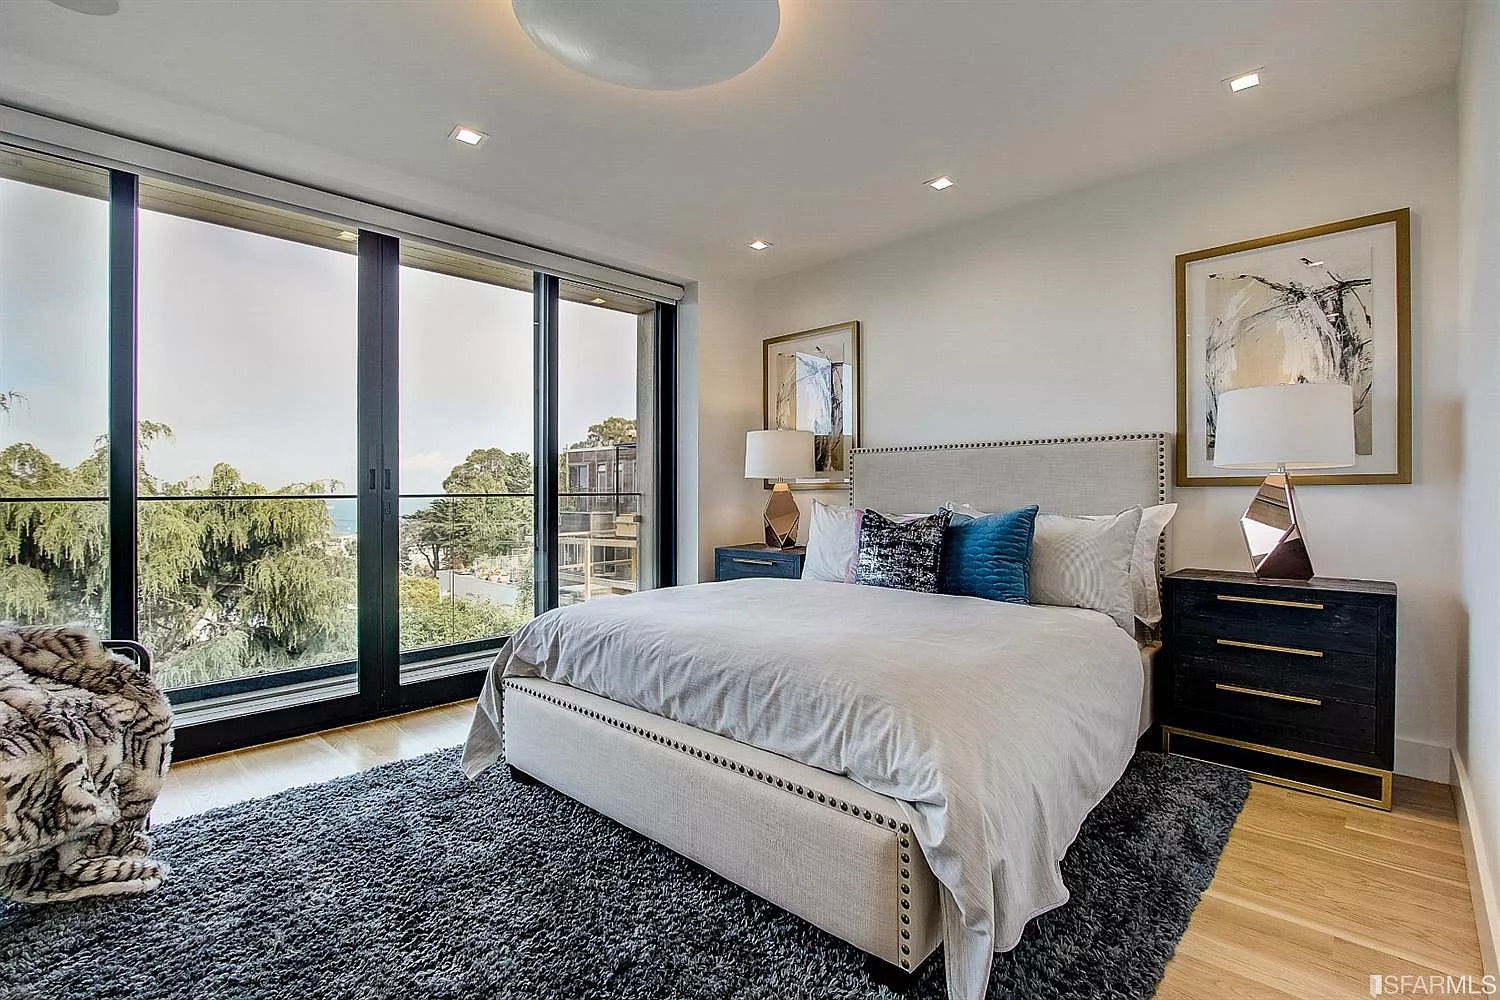 779 Wisconsin St, San Francisco, CA 94107 - $3,648,000 home for sale, house images, photos and pics gallery